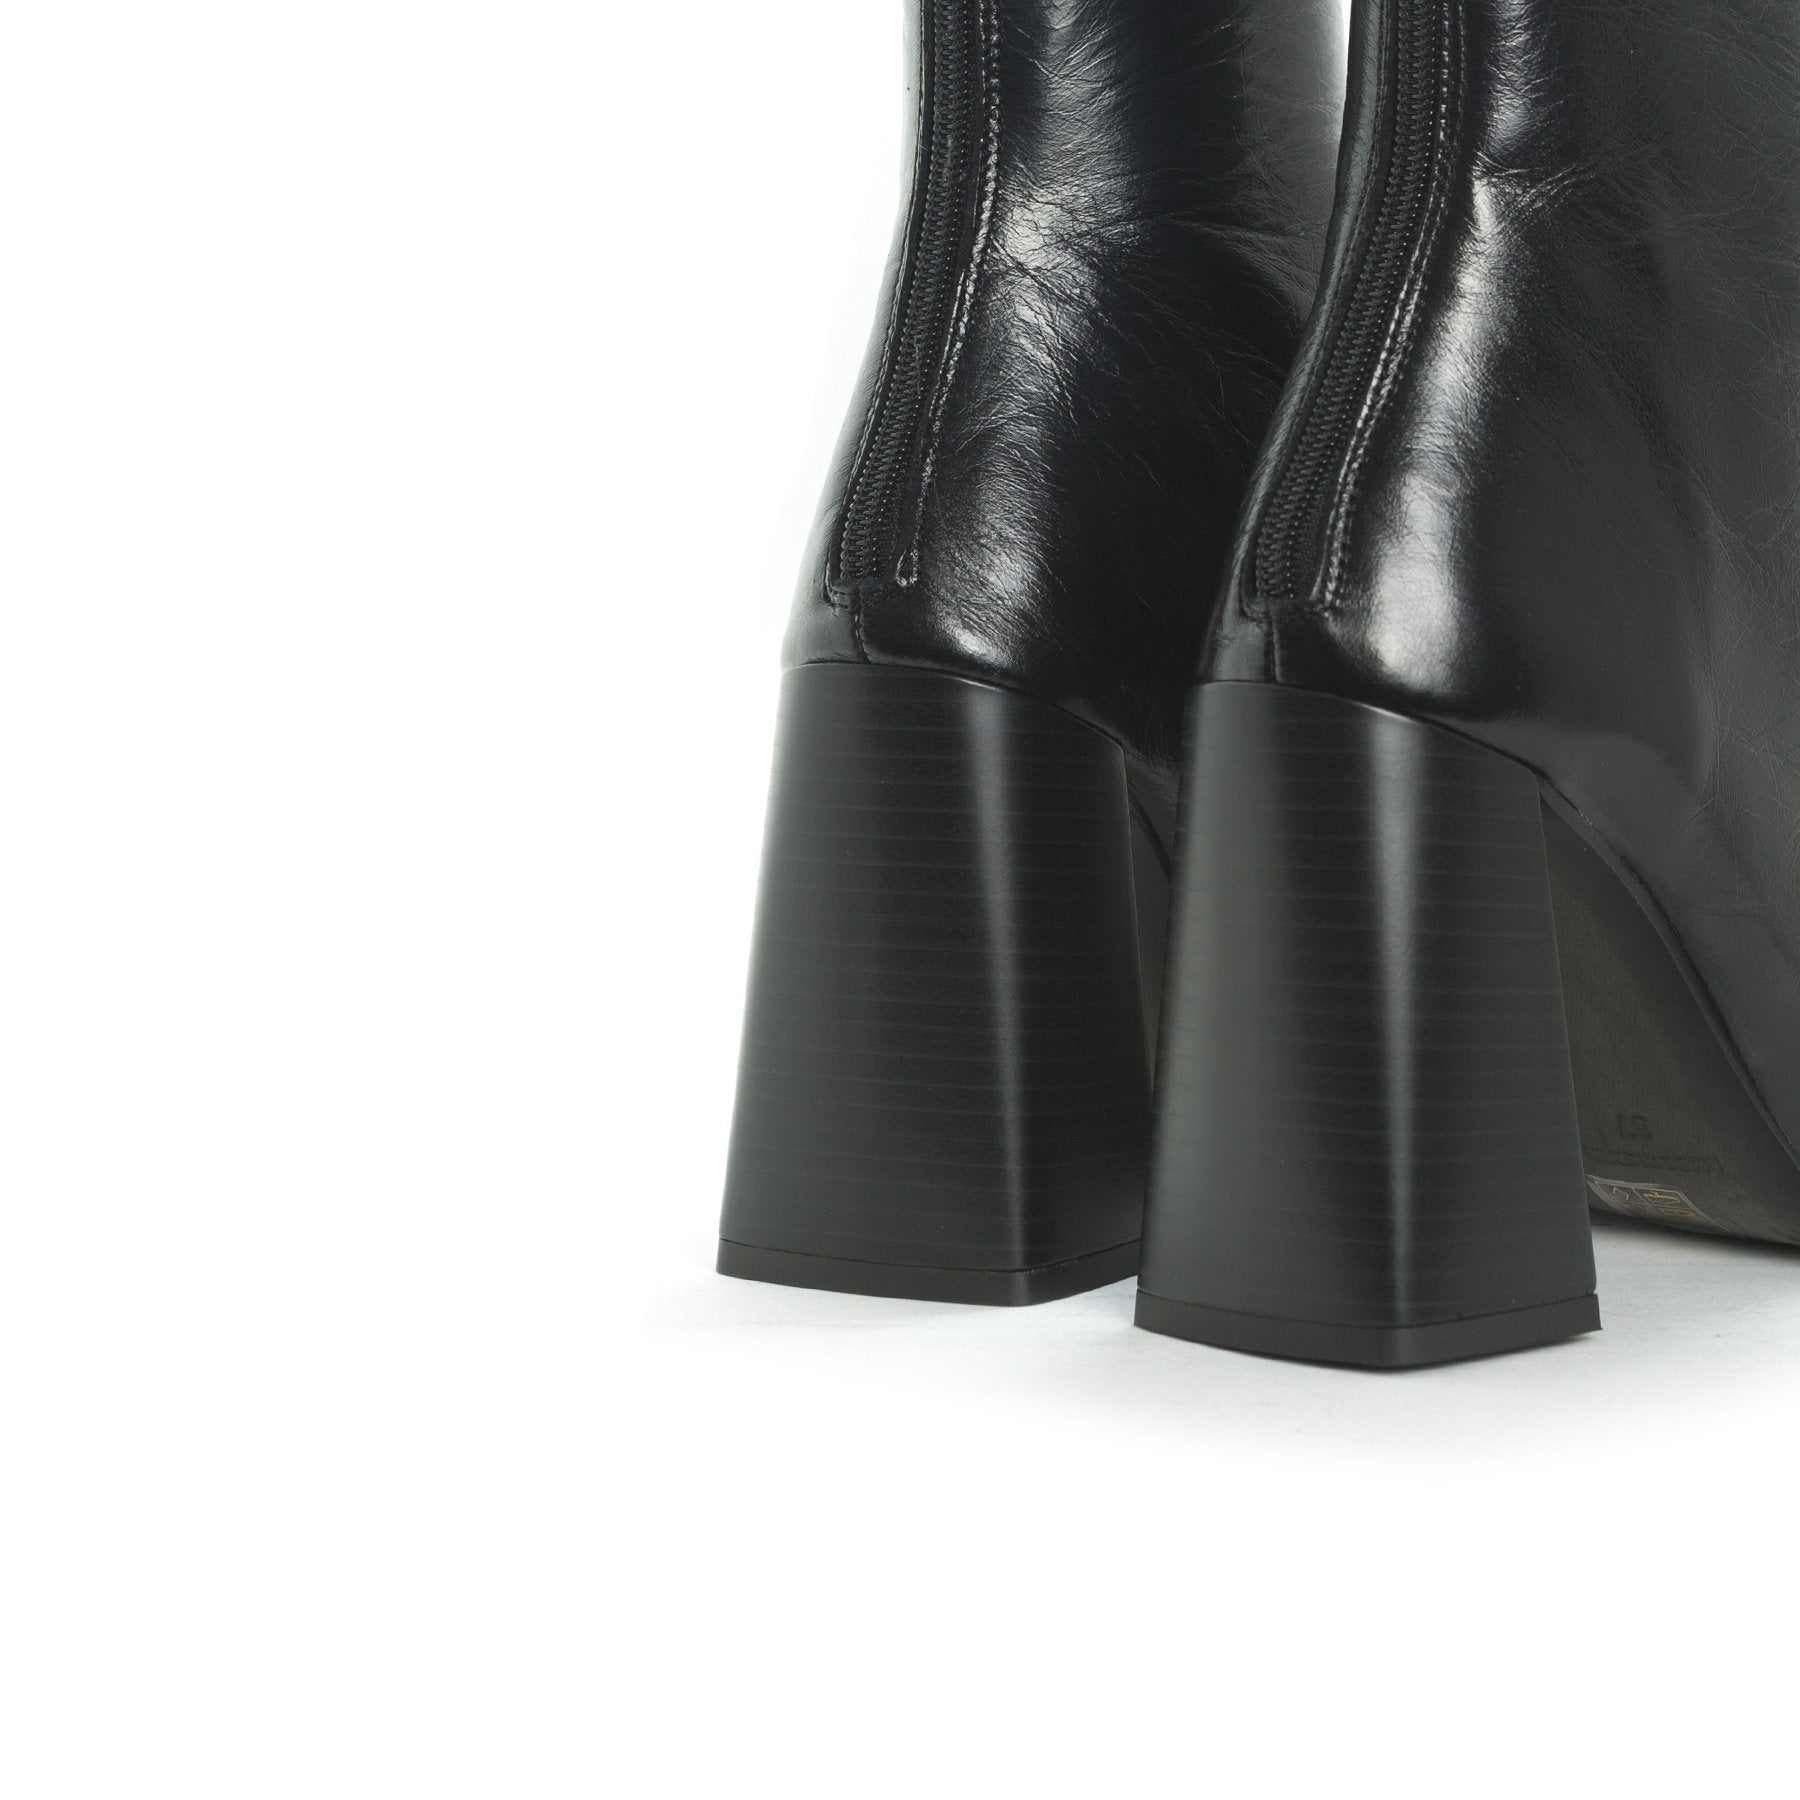 Sorrento Black Leather